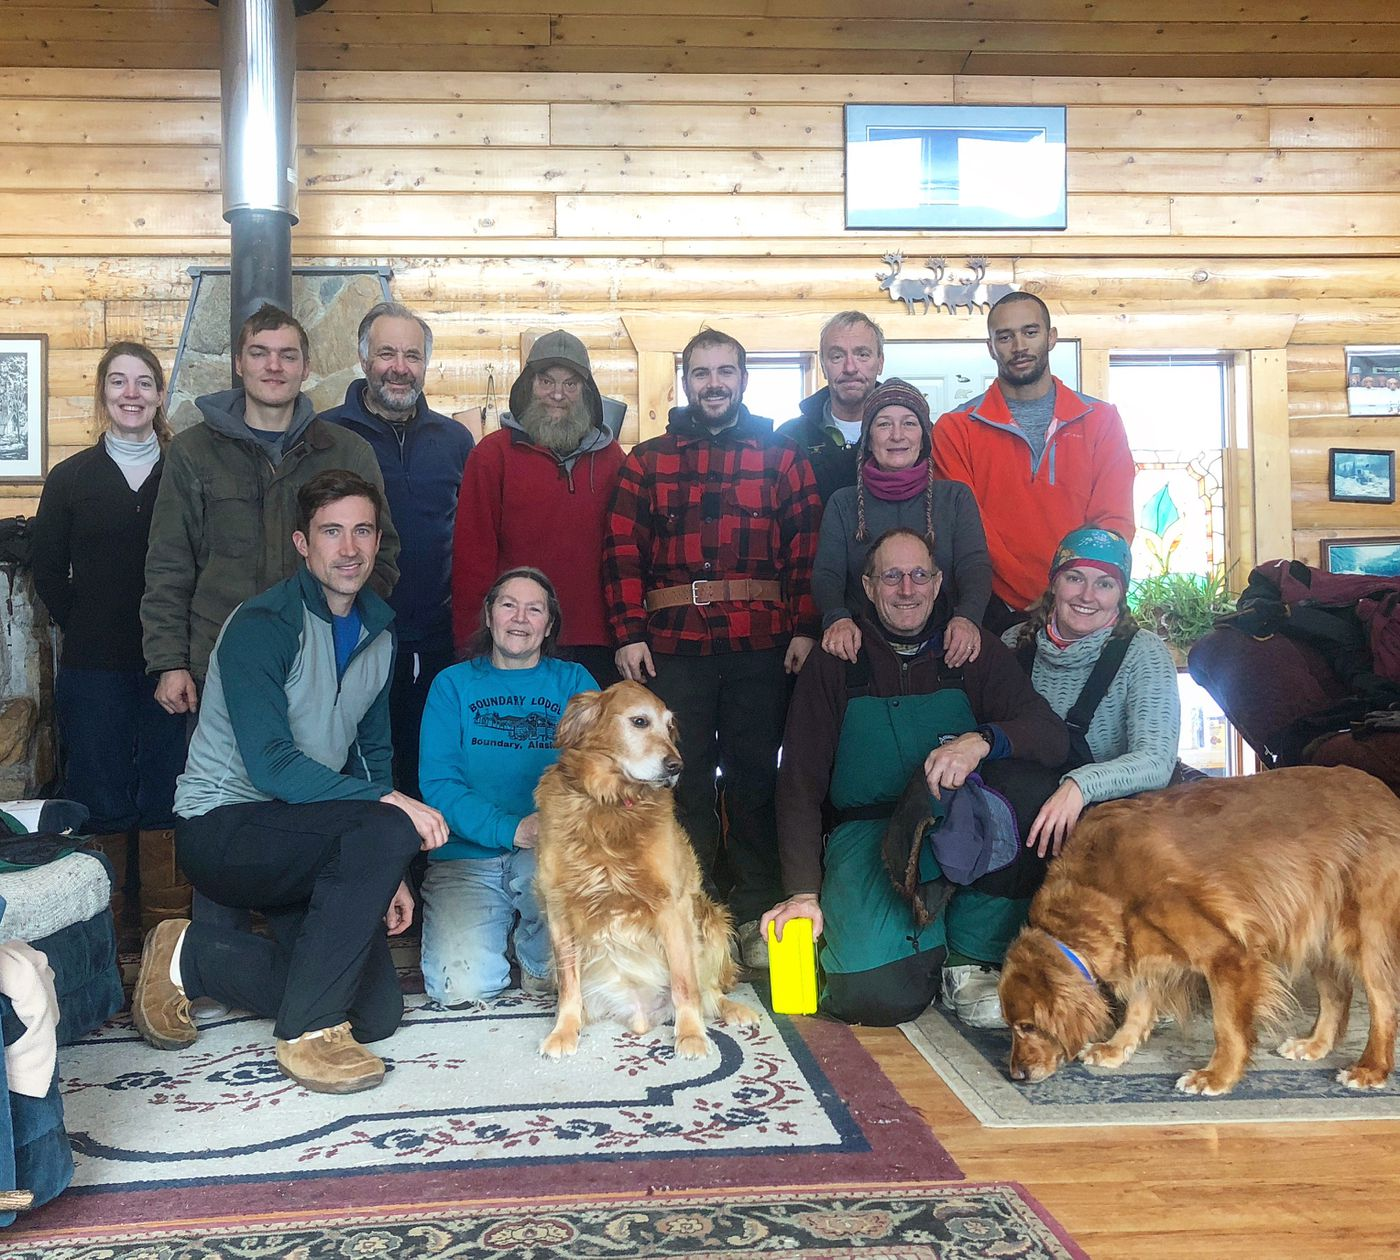 Volunteers who assisted with musher Jason Campeau's rescue from the Yukon Quest gathered for a photo in February 2018. Standing in back from left are Krystie DePue, Joel Helmer, Martin Randle, David Likins, Daniel Helmer, Craig Jones, Connie Anthony and Brandon Sipho. Front row from left: Ben Turman, Teresa (last name not confirmed), Joe Durrenberger and Kinzea Jones. (Kinzea Jones photo)